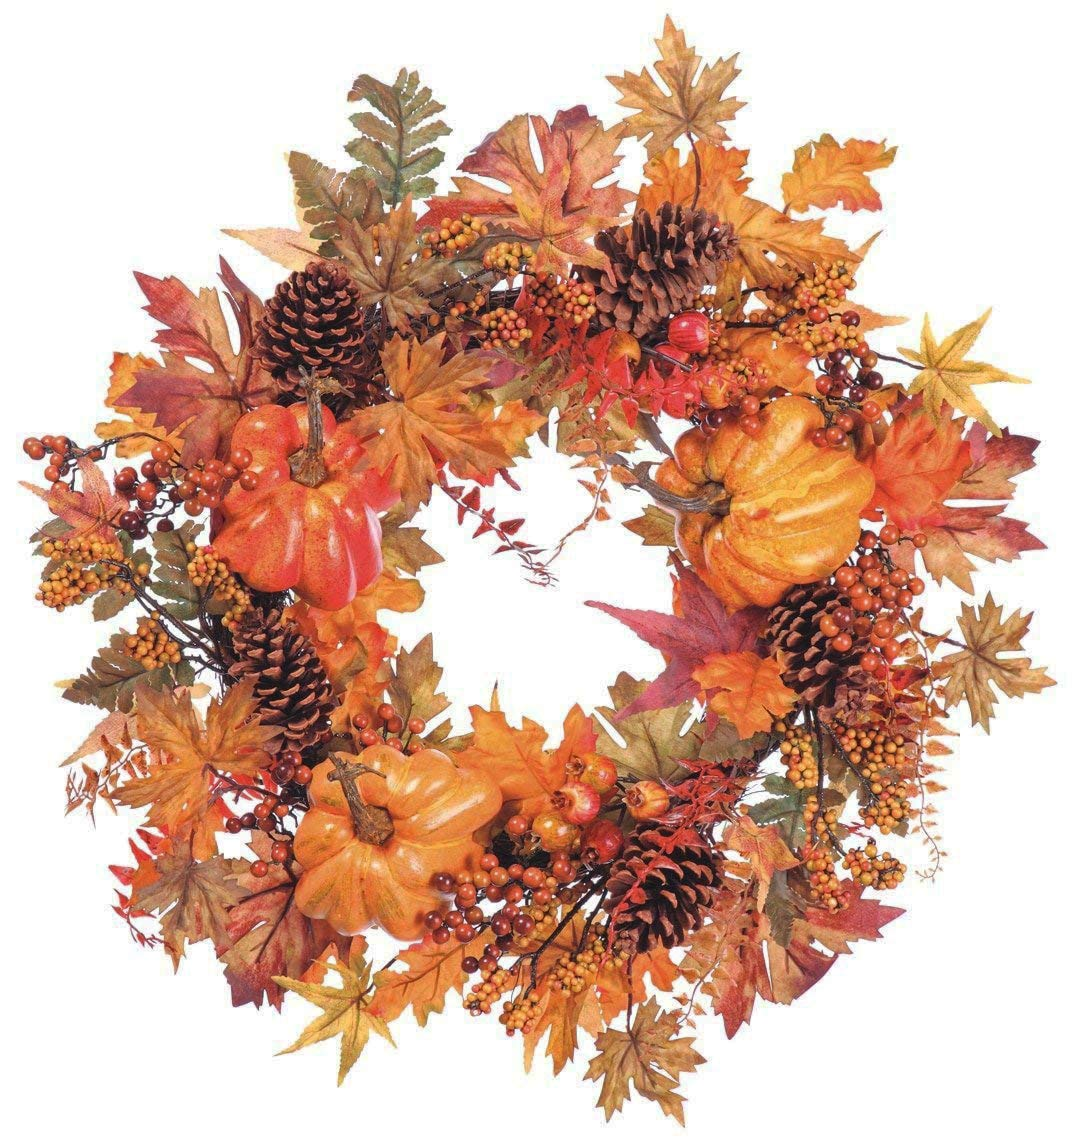 24-Inch-Fall-Wreath-with-Pumpkins-Pine-Cones-Maple-Leaves-Thanksgiving-Wreath